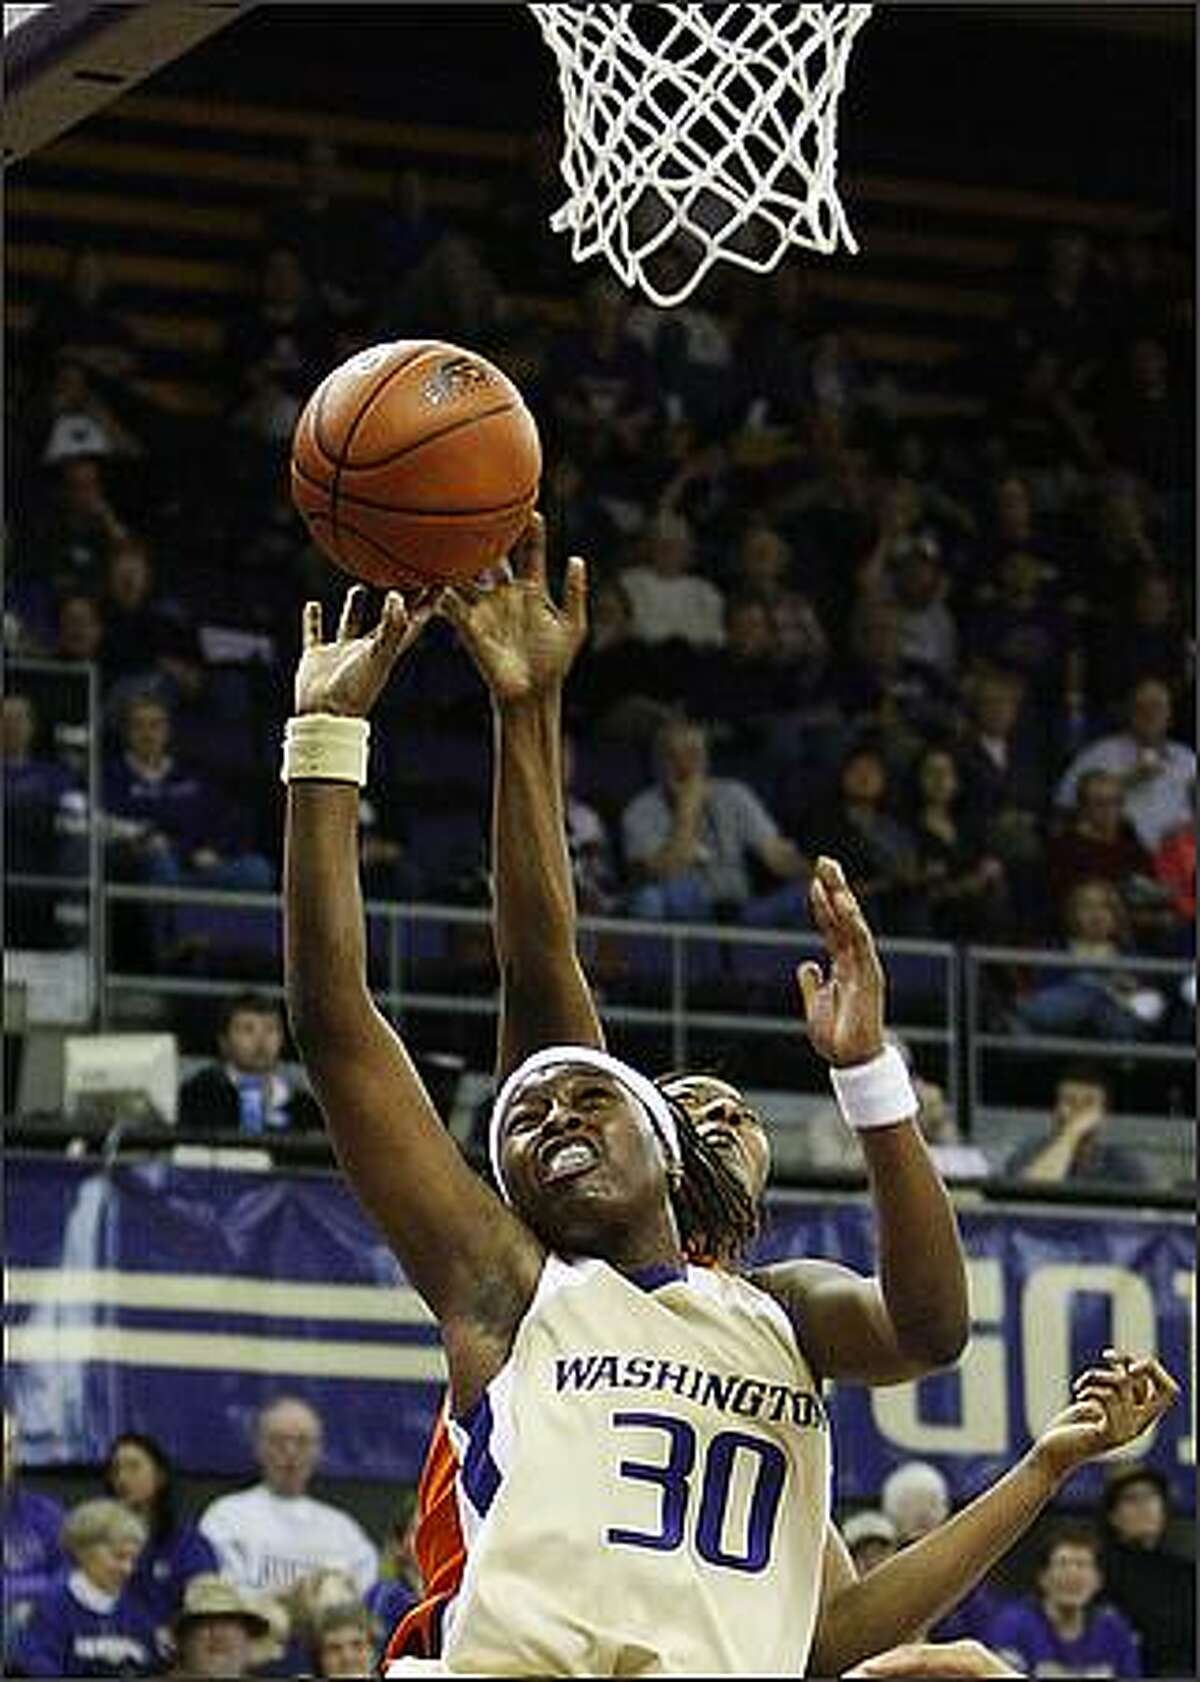 Washington's Lydia Young goes up for a shot during Sunday's championship game of the Husky Classic at Hec Edmundson Pavilion versus Clemson University. The Huskies lost the game 85-67.